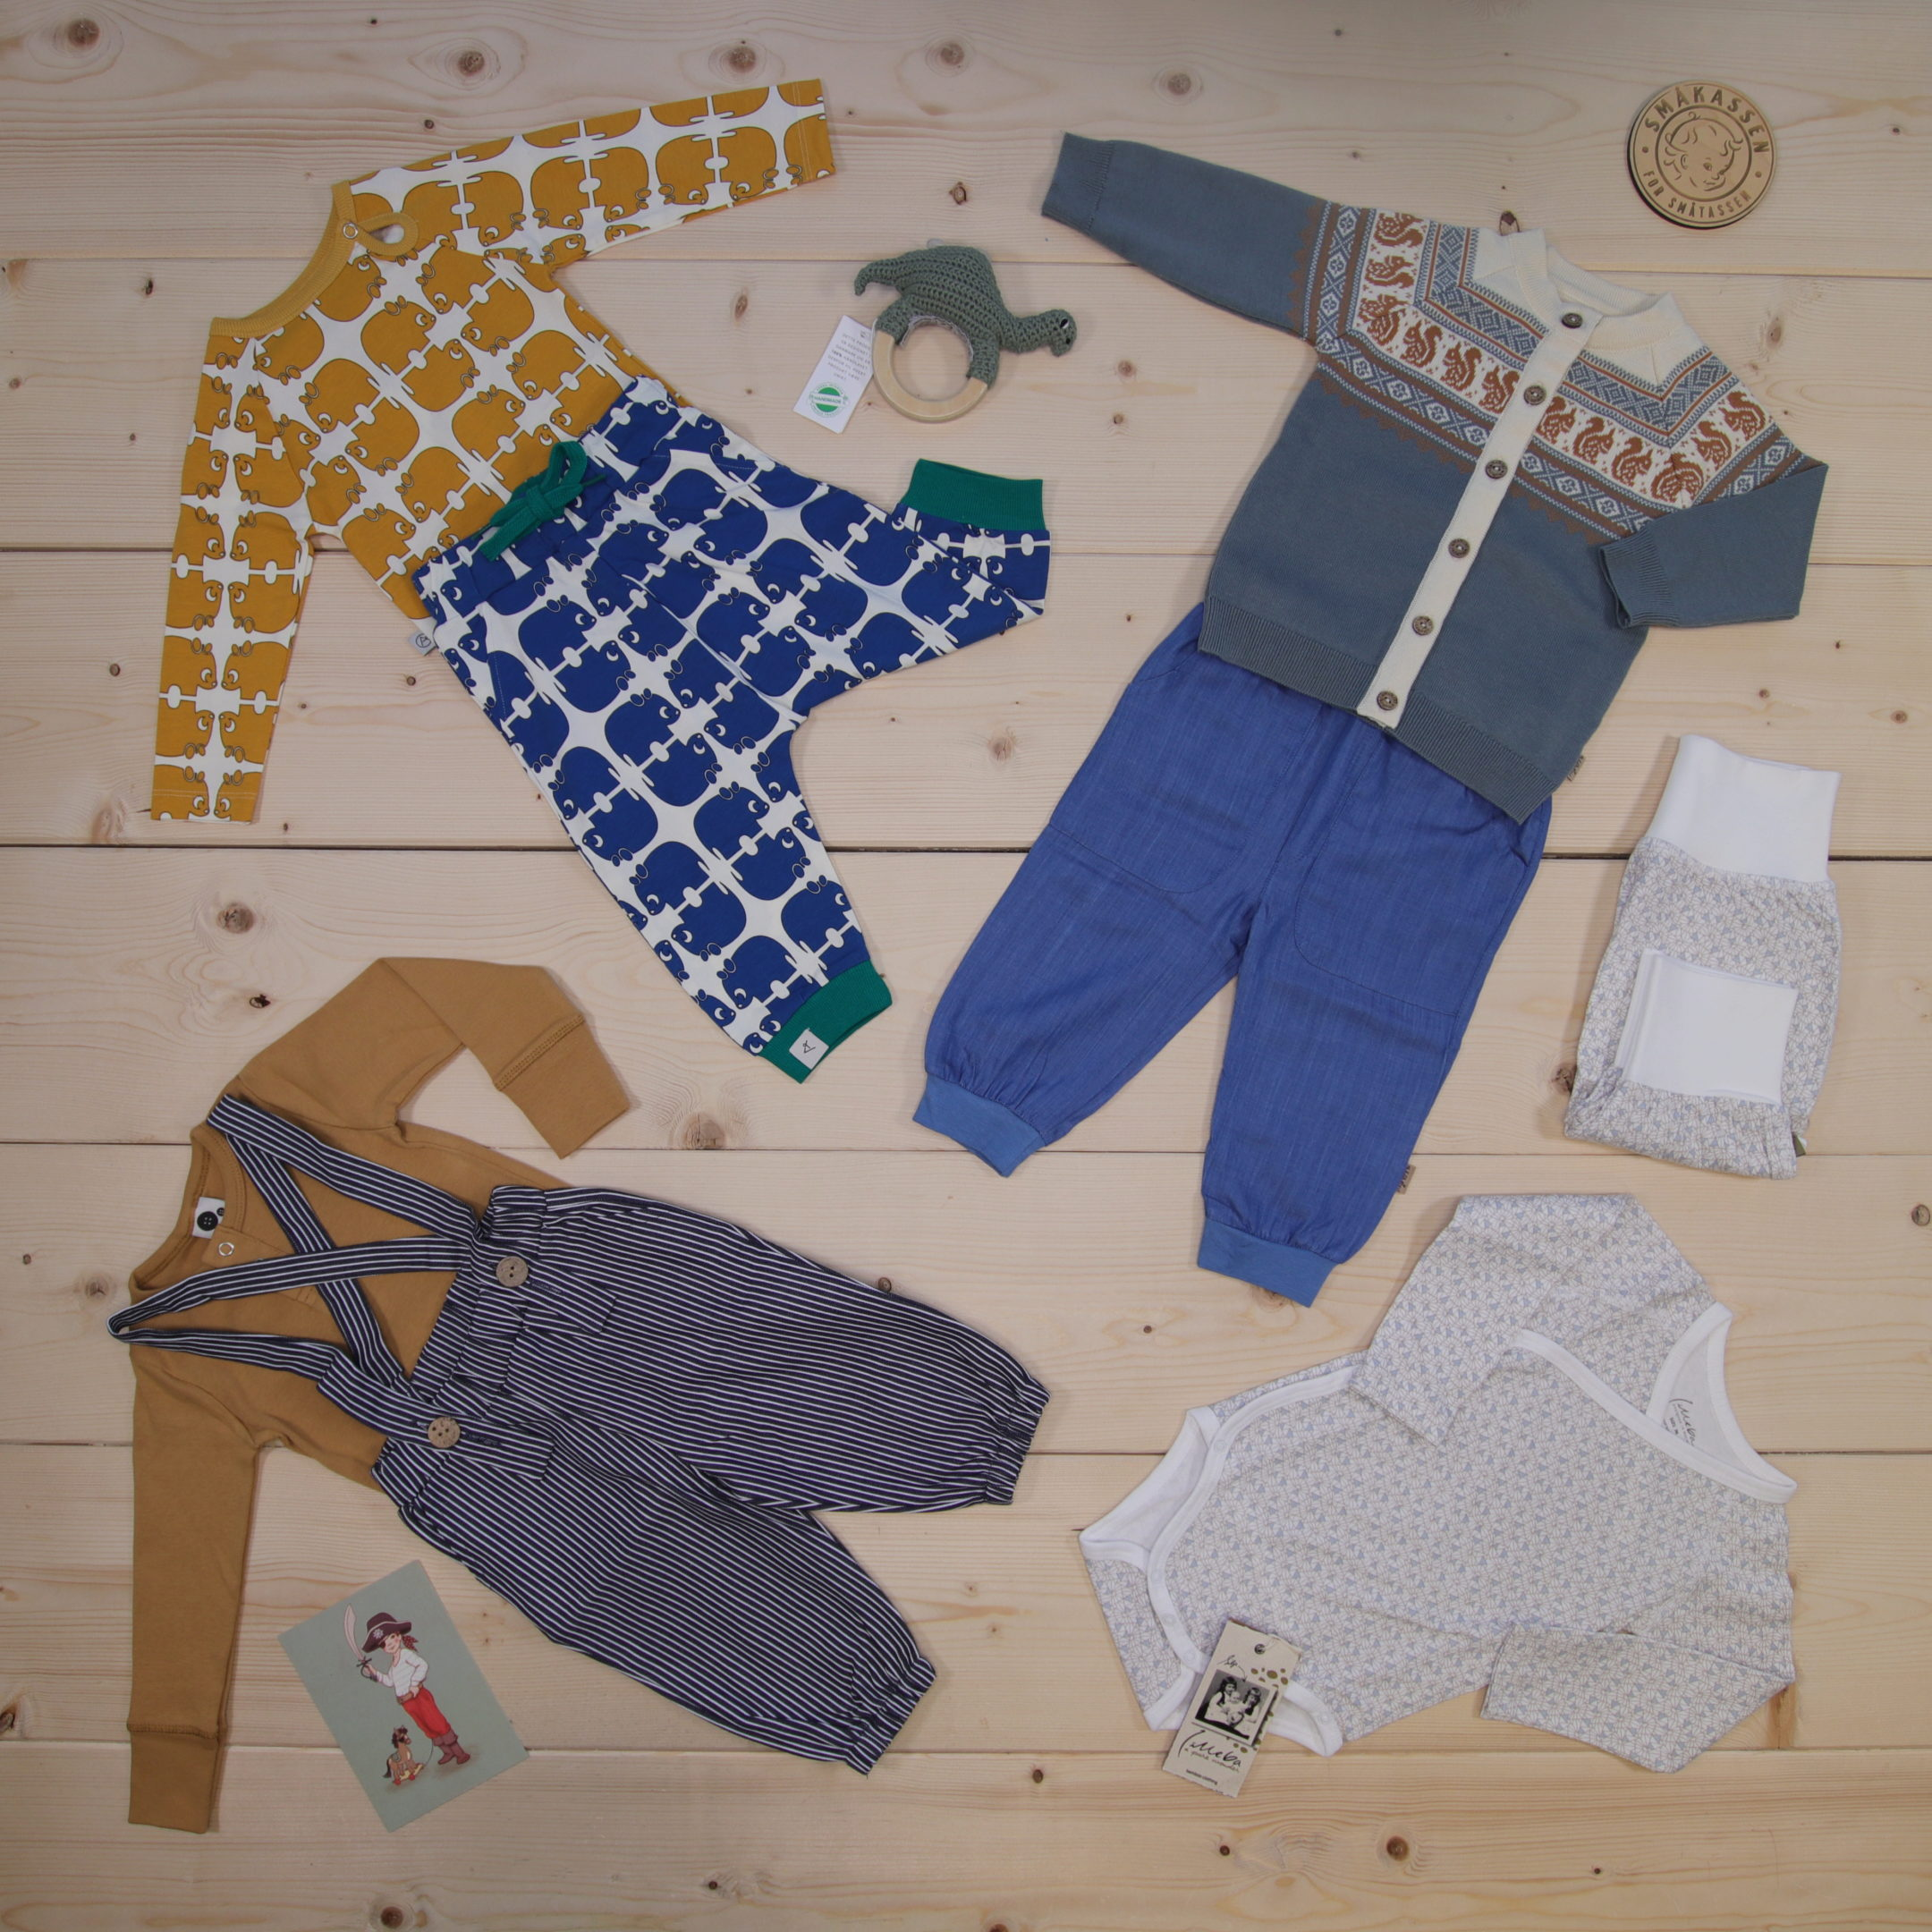 This is Småkassen that we prepared for a boy in the styles cute and cool in size 74.